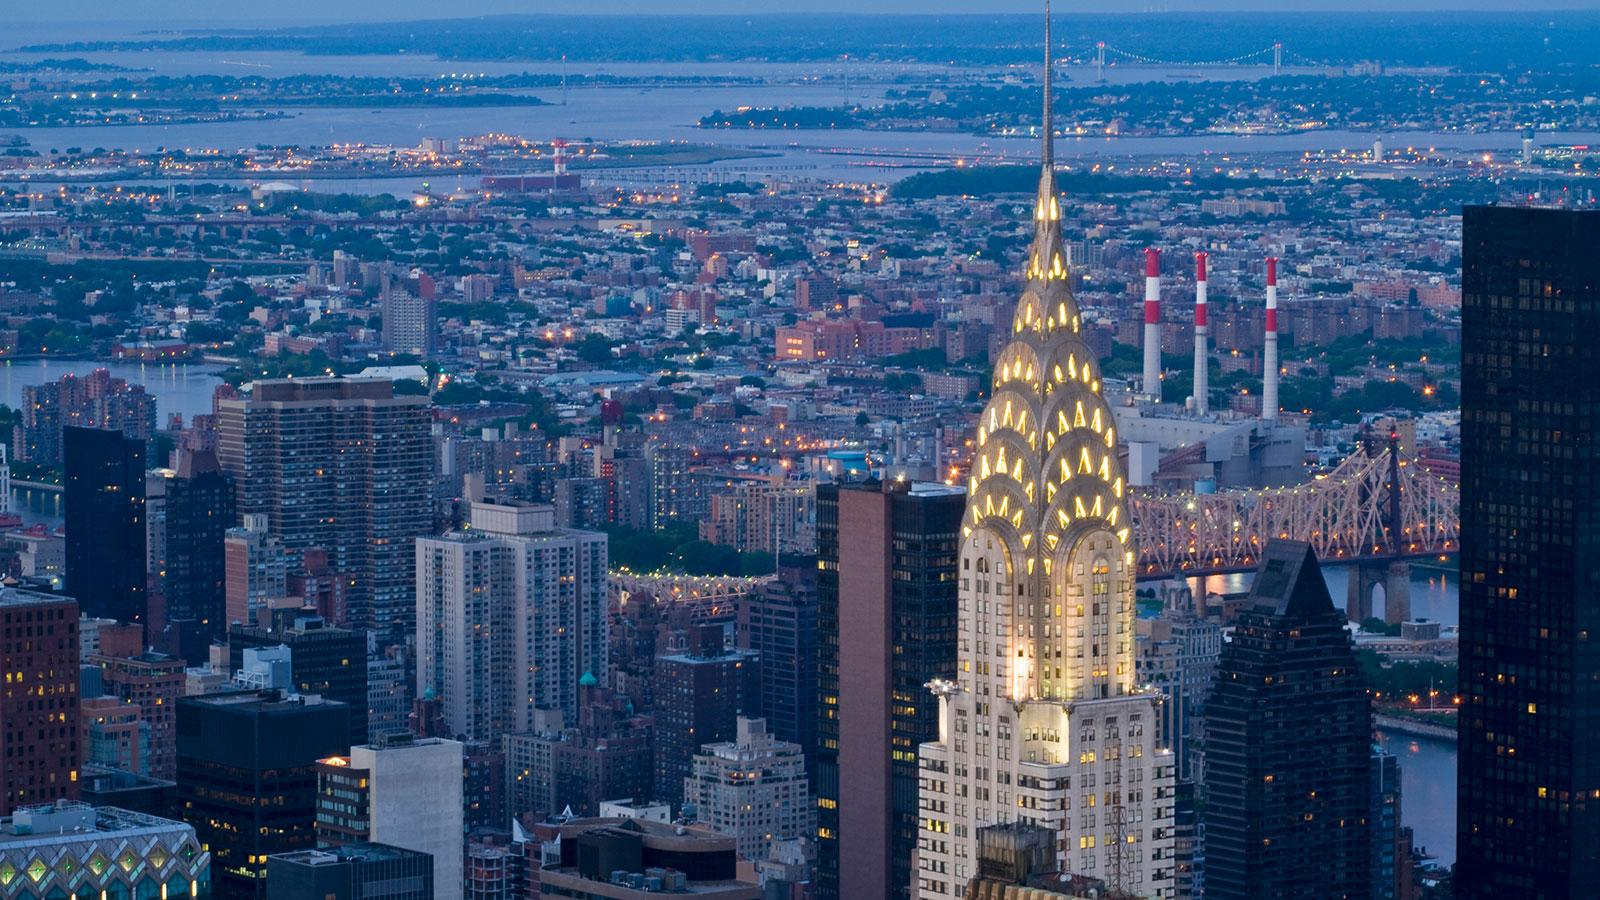 Chrysler Building in de avond